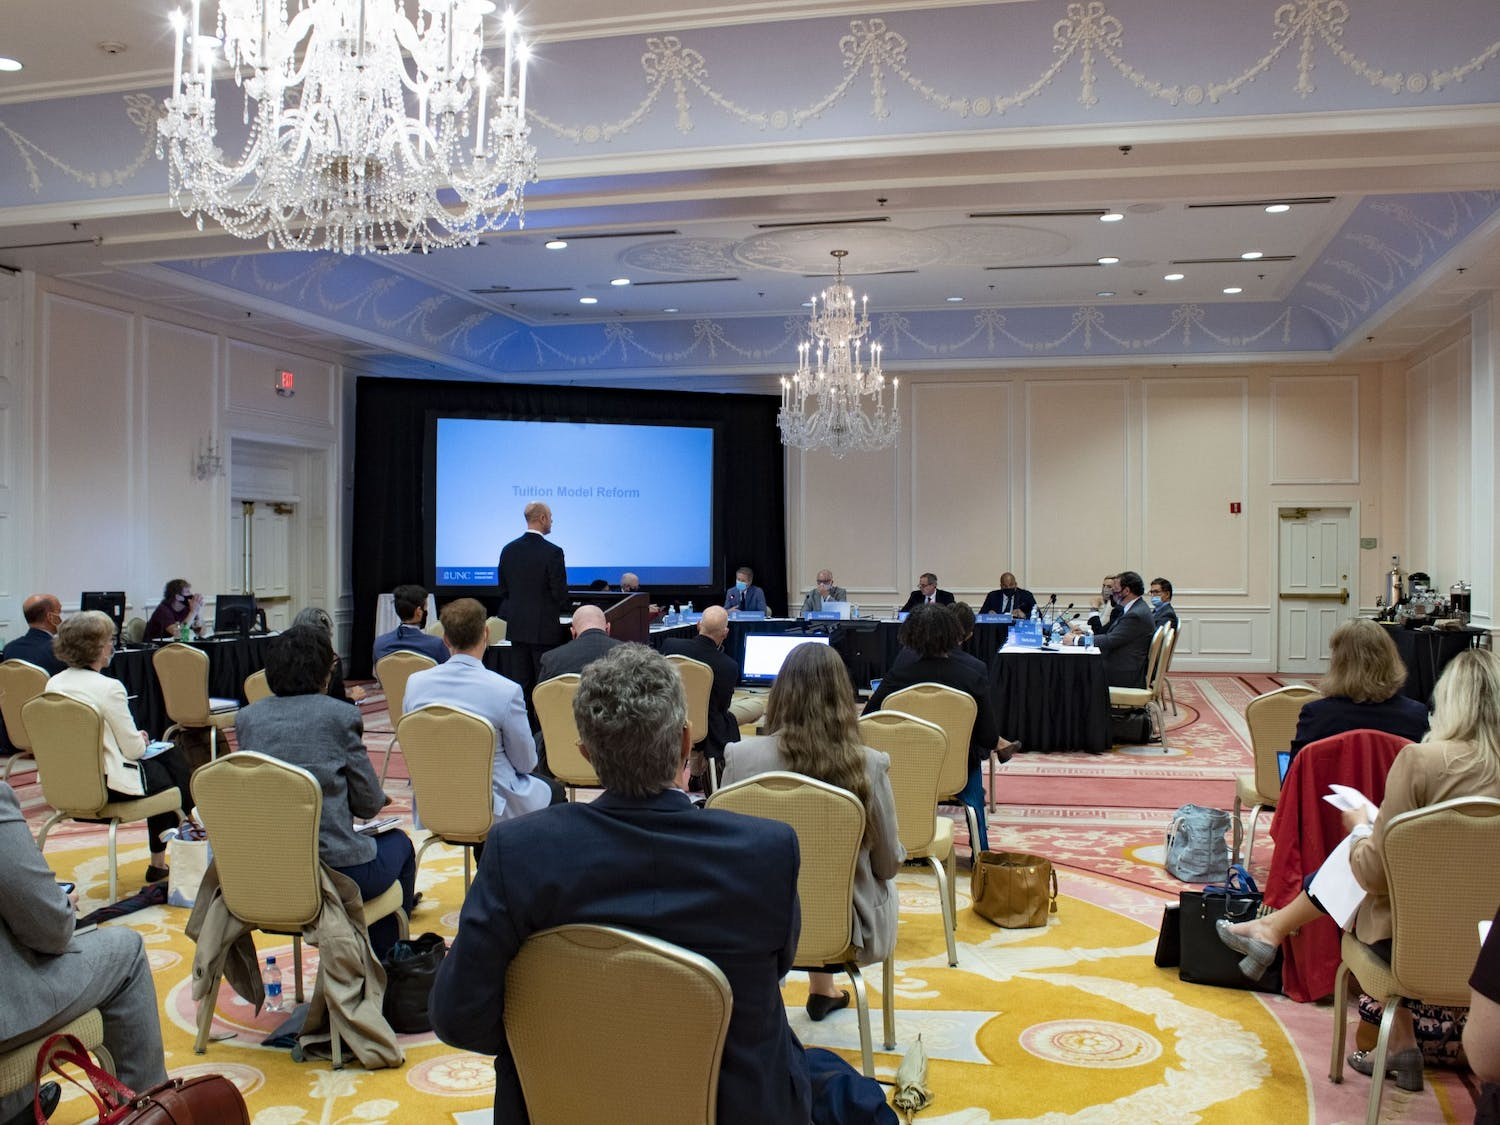 Chief Financial Officer Nathan Knuffman presents to the Committee on Finance, Infrastructure, and Audit in the Chancellor's Ballroom at the Carolina Inn on Sept. 22, 2021.